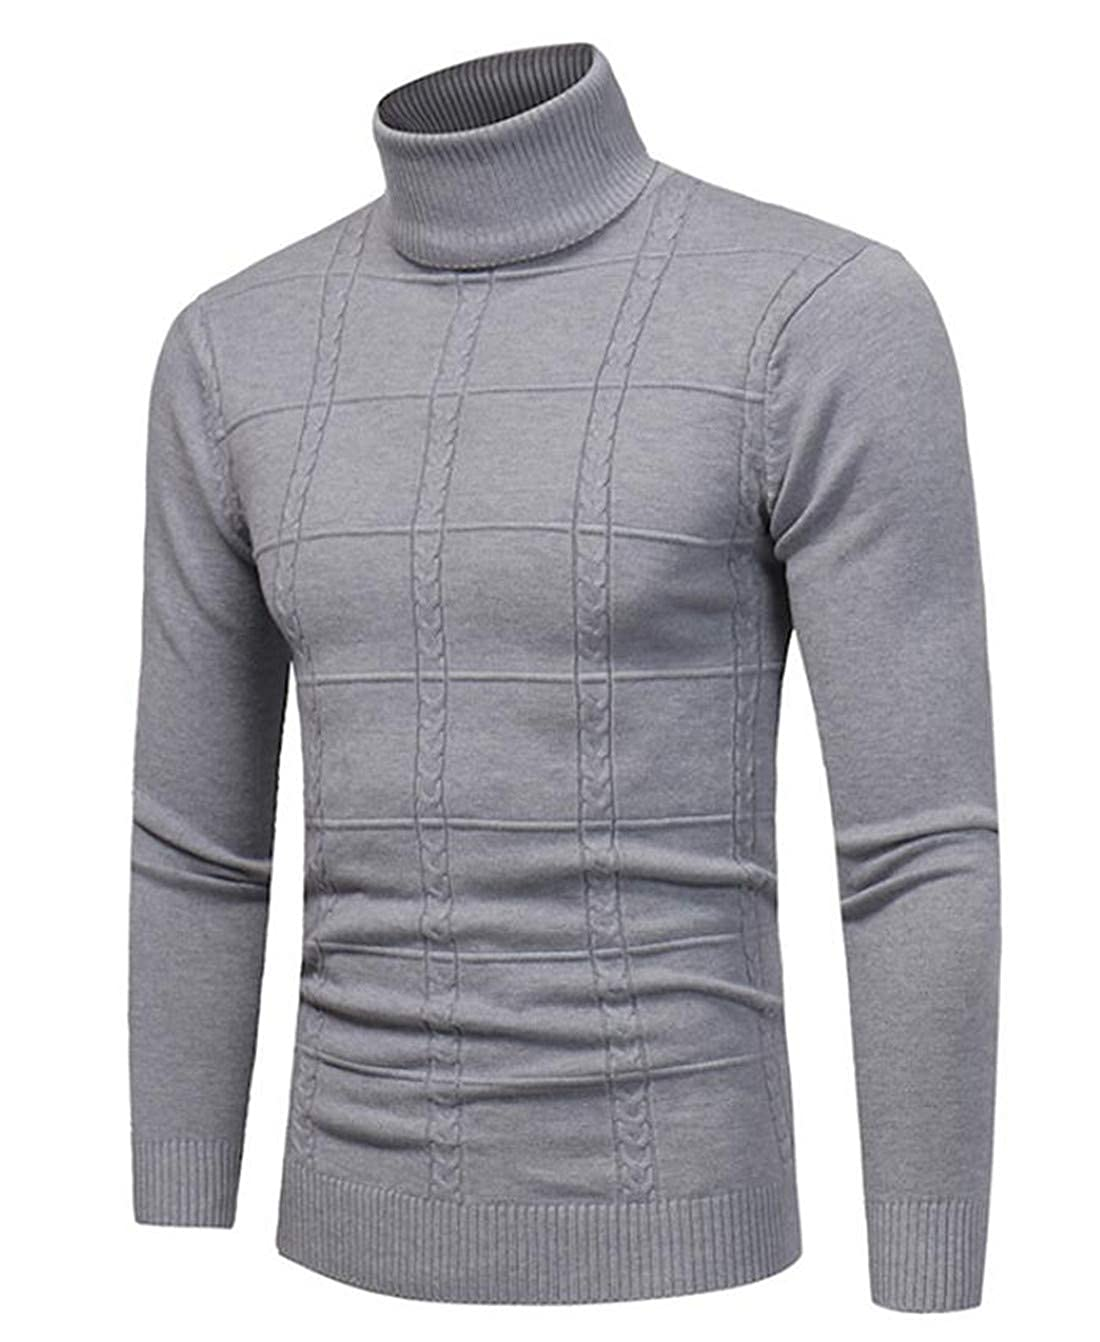 Nanquan Men Classic Fit Solid Turtleneck Pullover Knitted Sweater